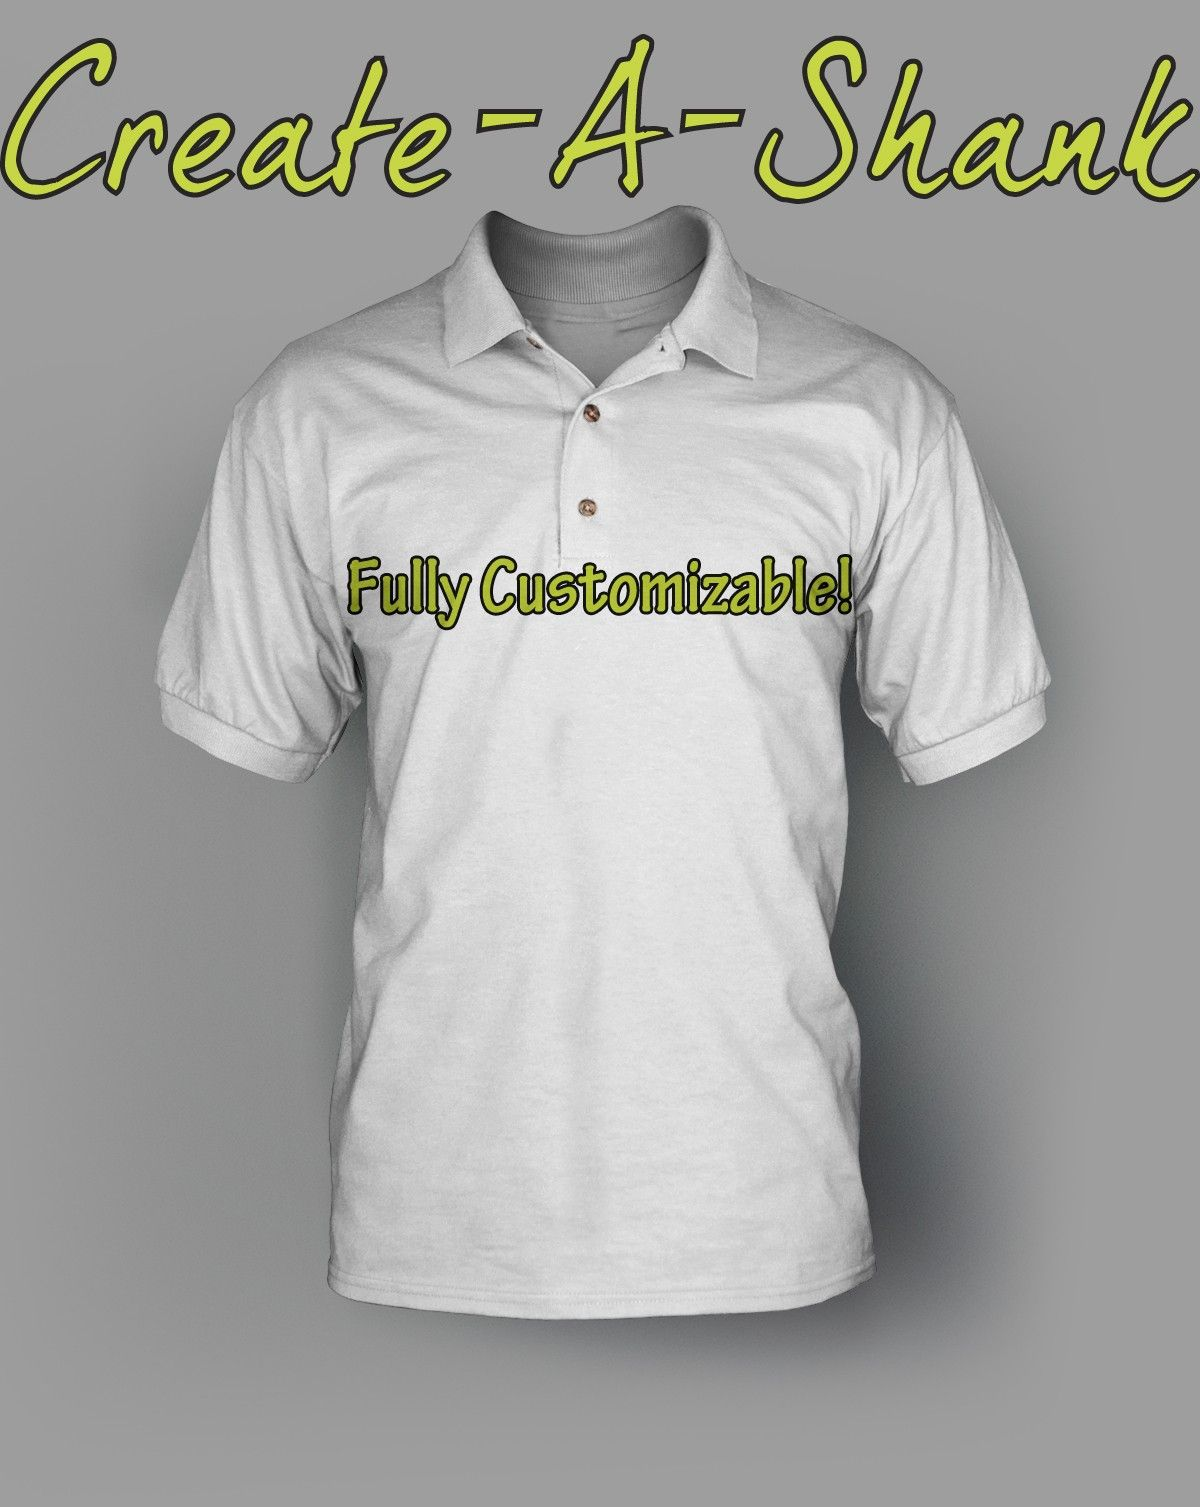 Design your own t shirt made in usa - Fully Customizable With Your Own Design Moisture Wicking Lightweight Golf Wear Made In The